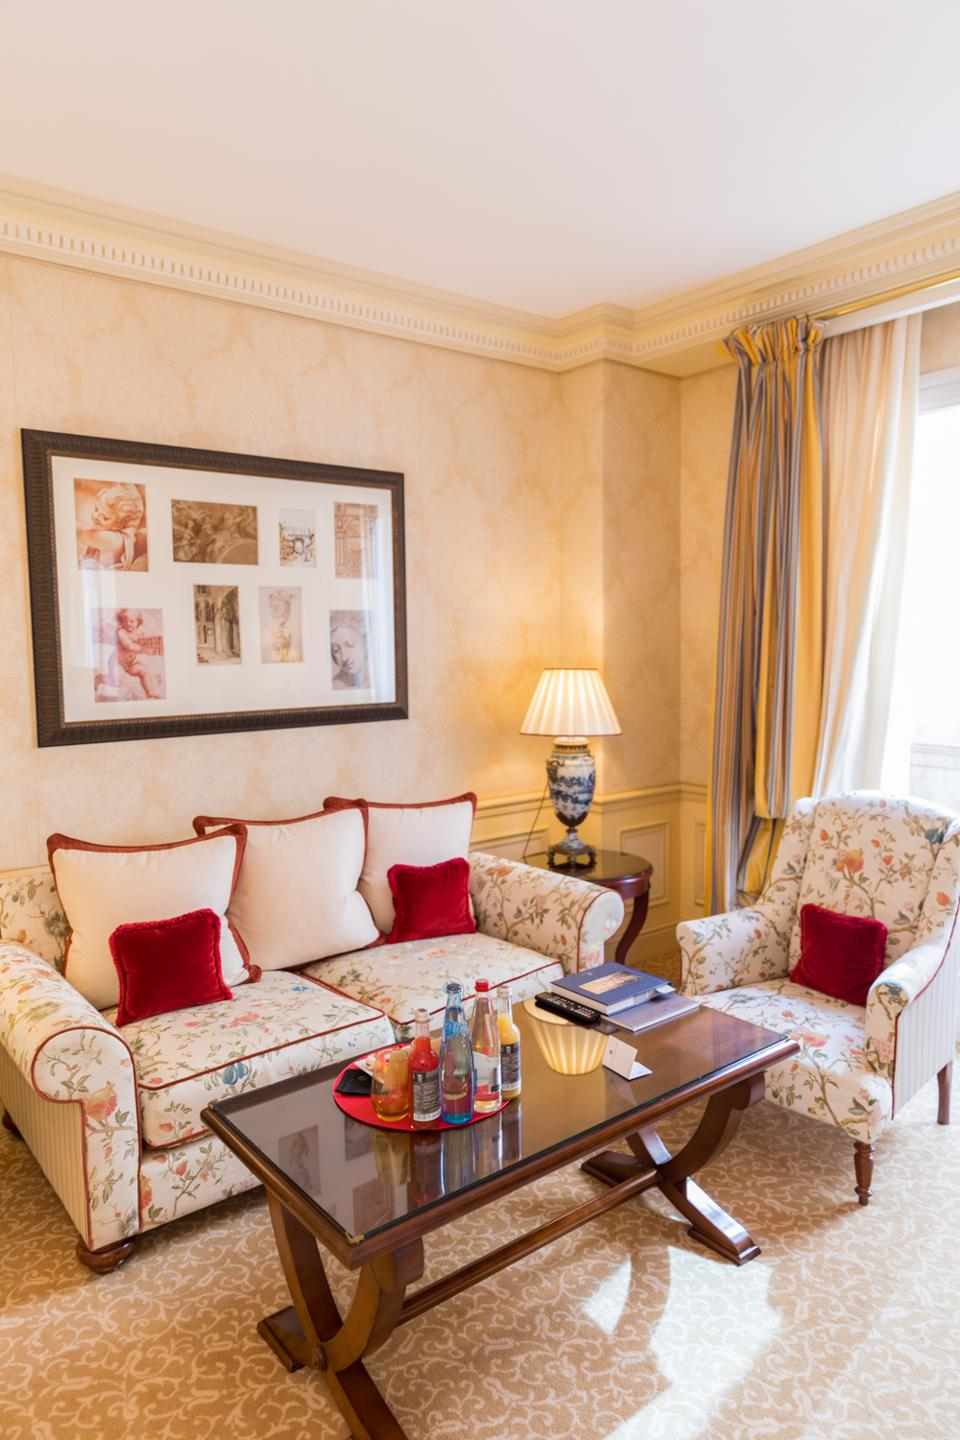 Monte Carlo - The living area in a junior suite at the Hotel Metropole